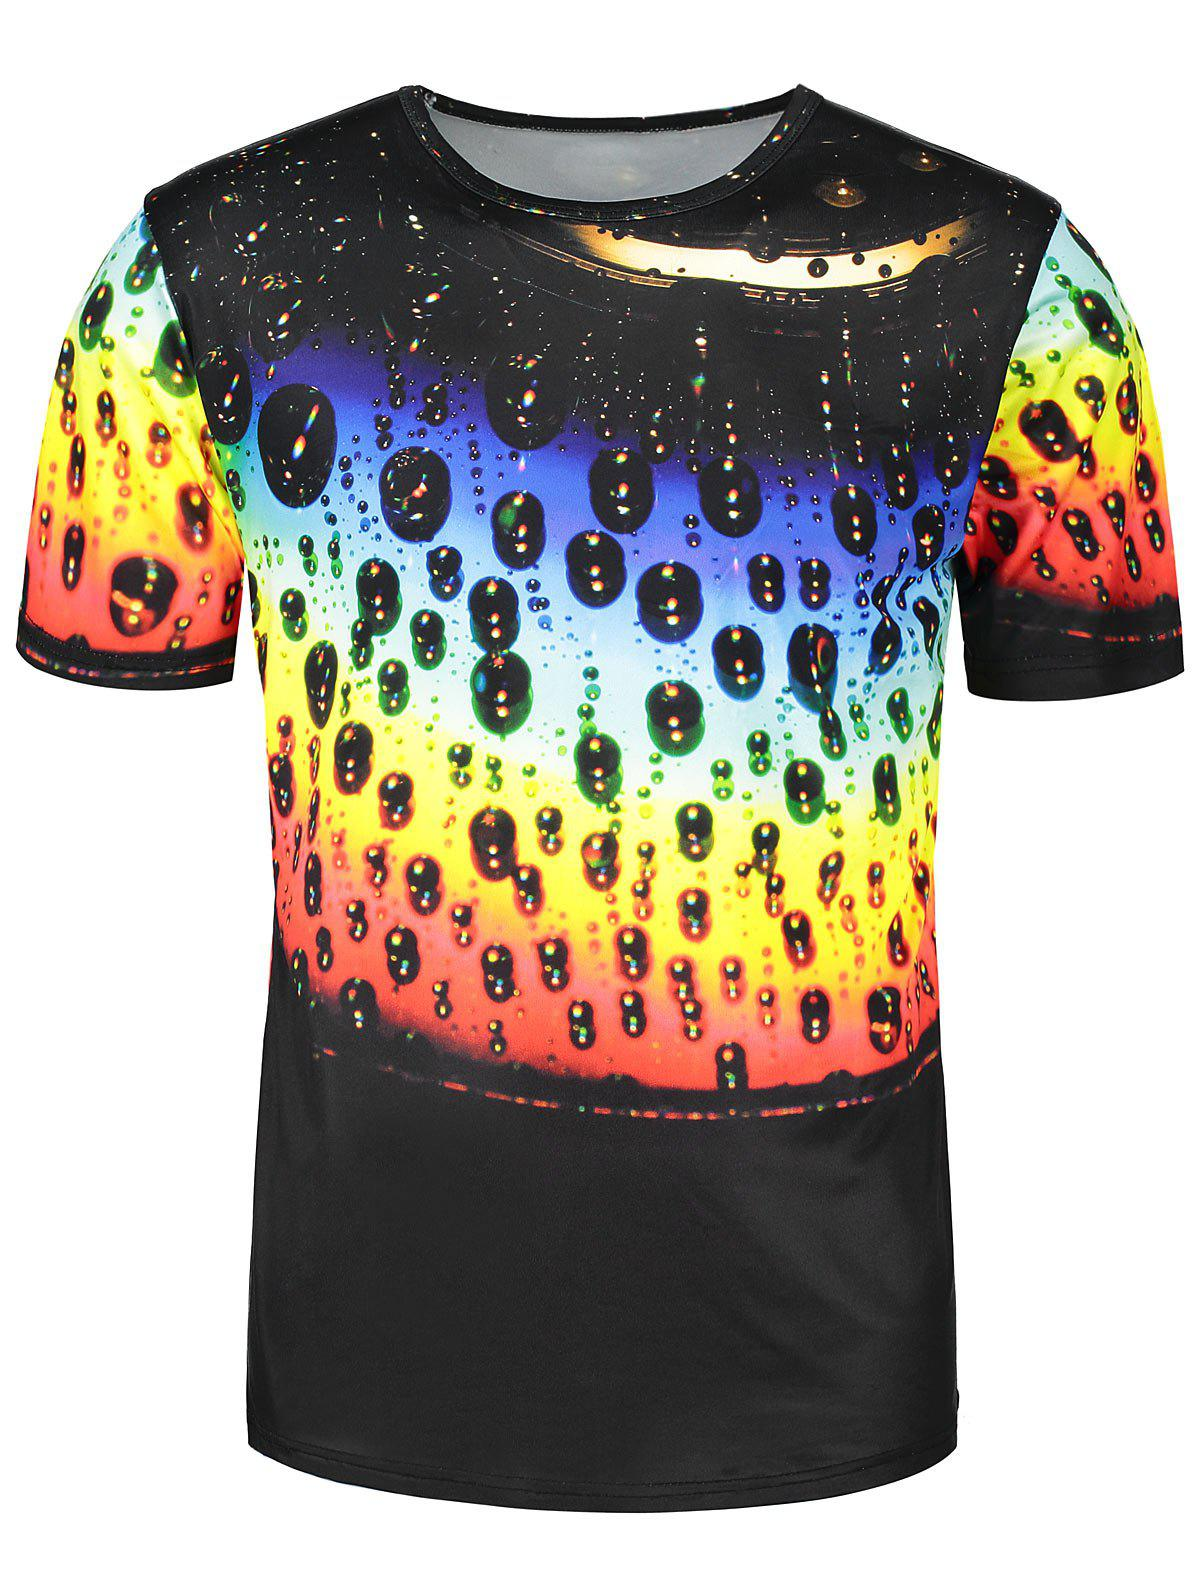 Fancy Colorful Waterdrip Print Short Sleeve T-shirt